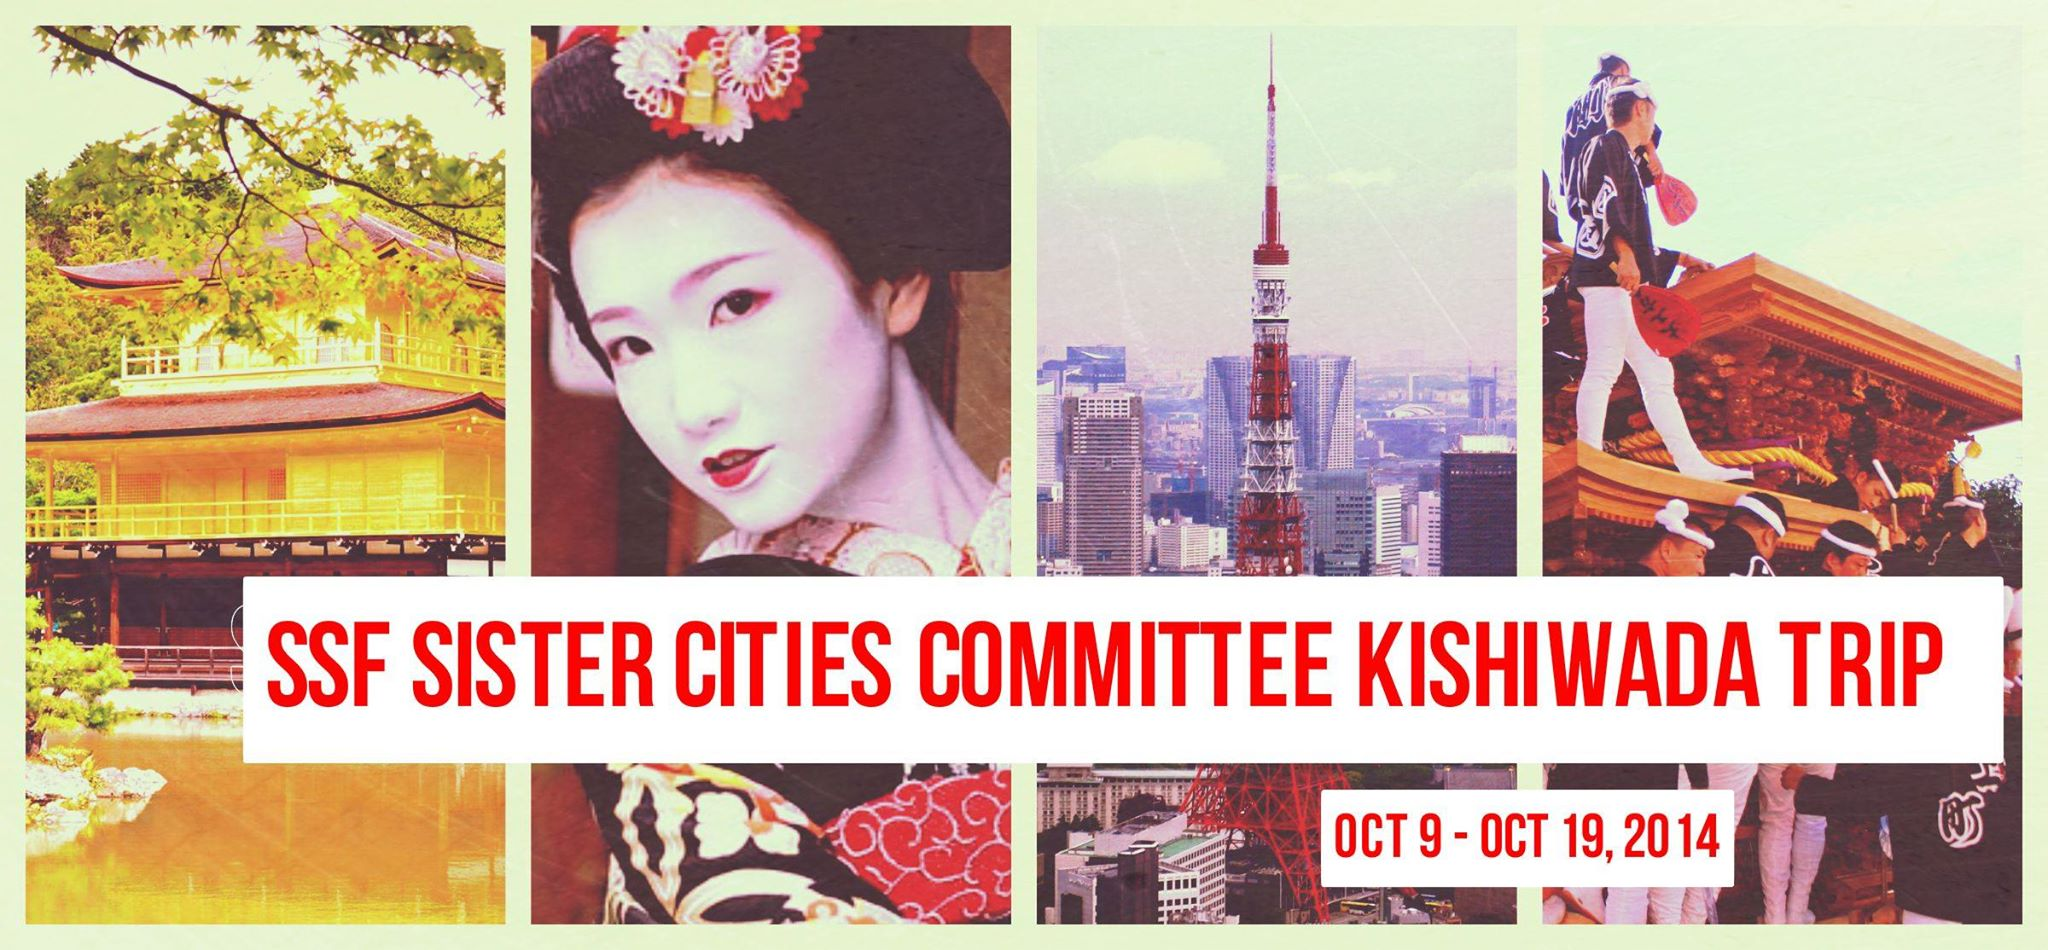 Are you interested in traveling to Japan? Sister Cities Group leads the way